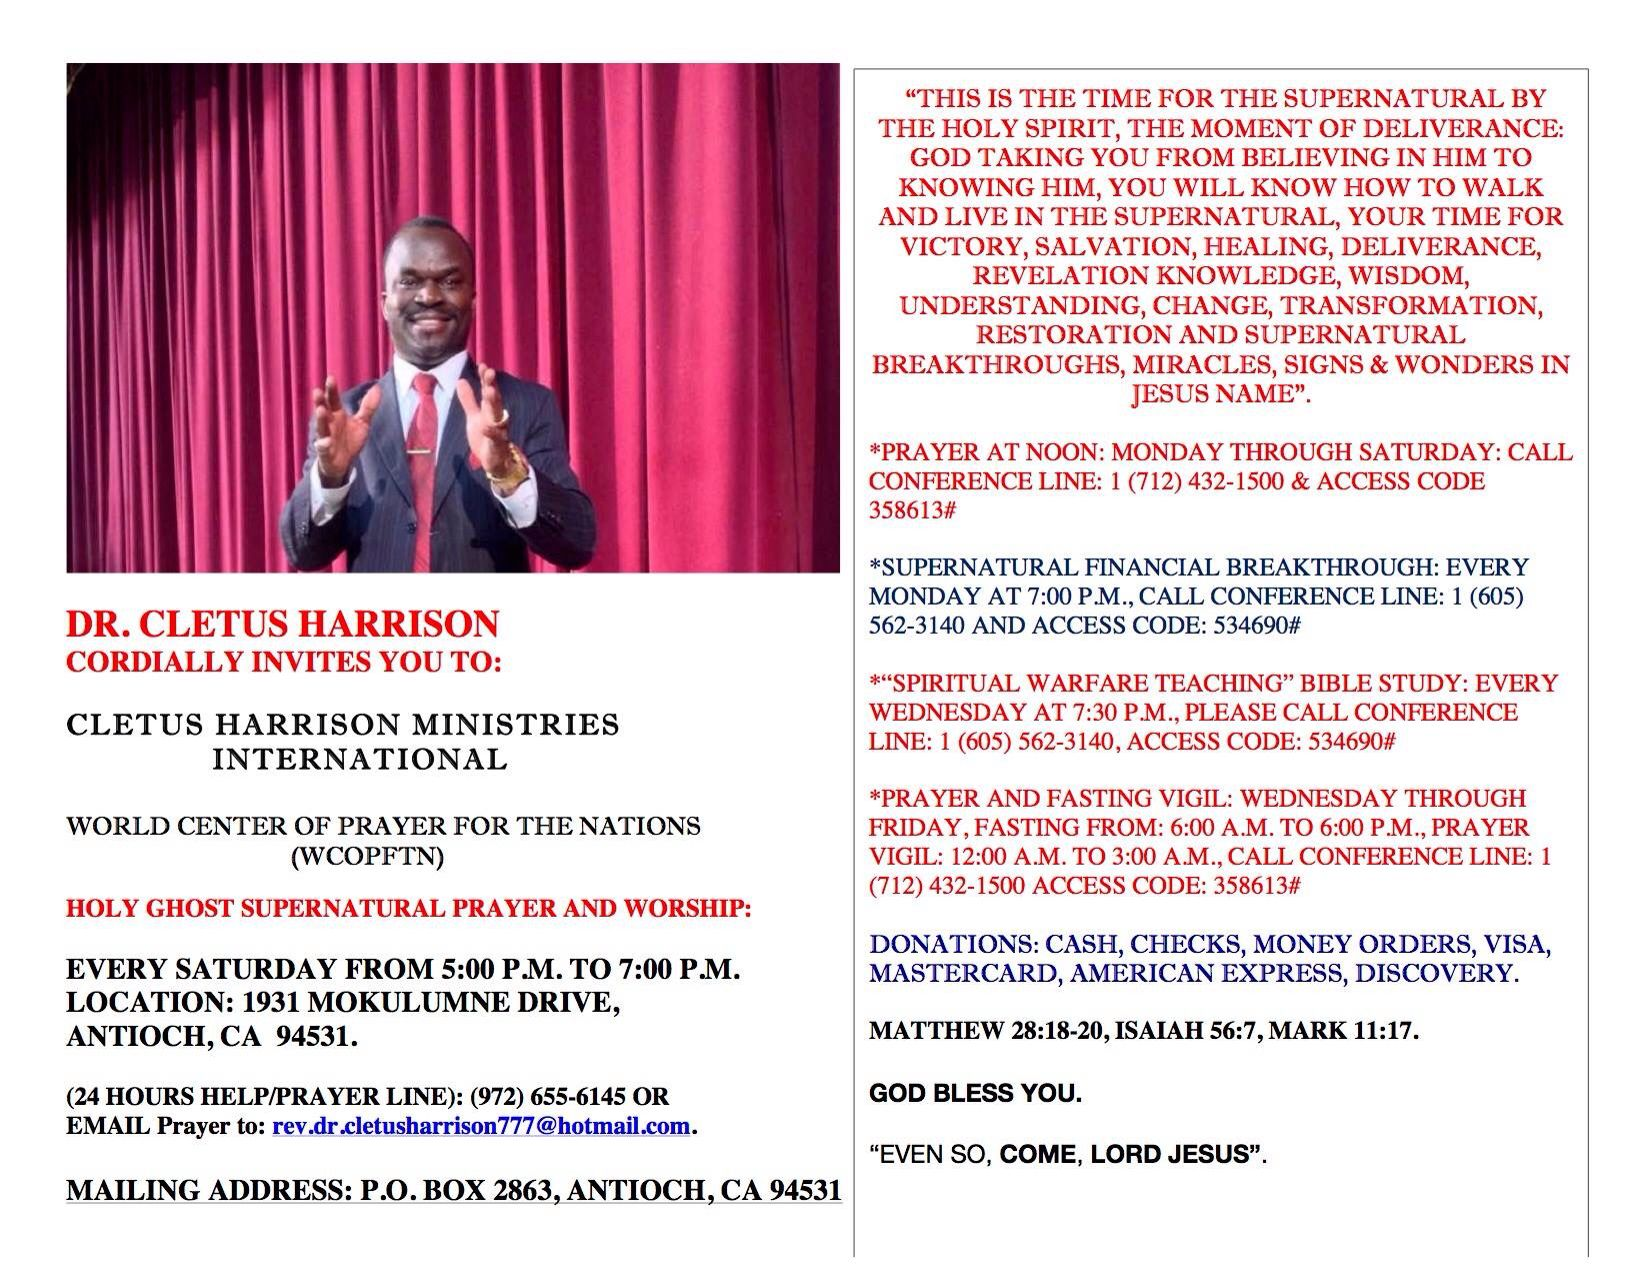 DR  CLETUS HARRISON CORDIALLY INVITES YOU TO: CLETUS